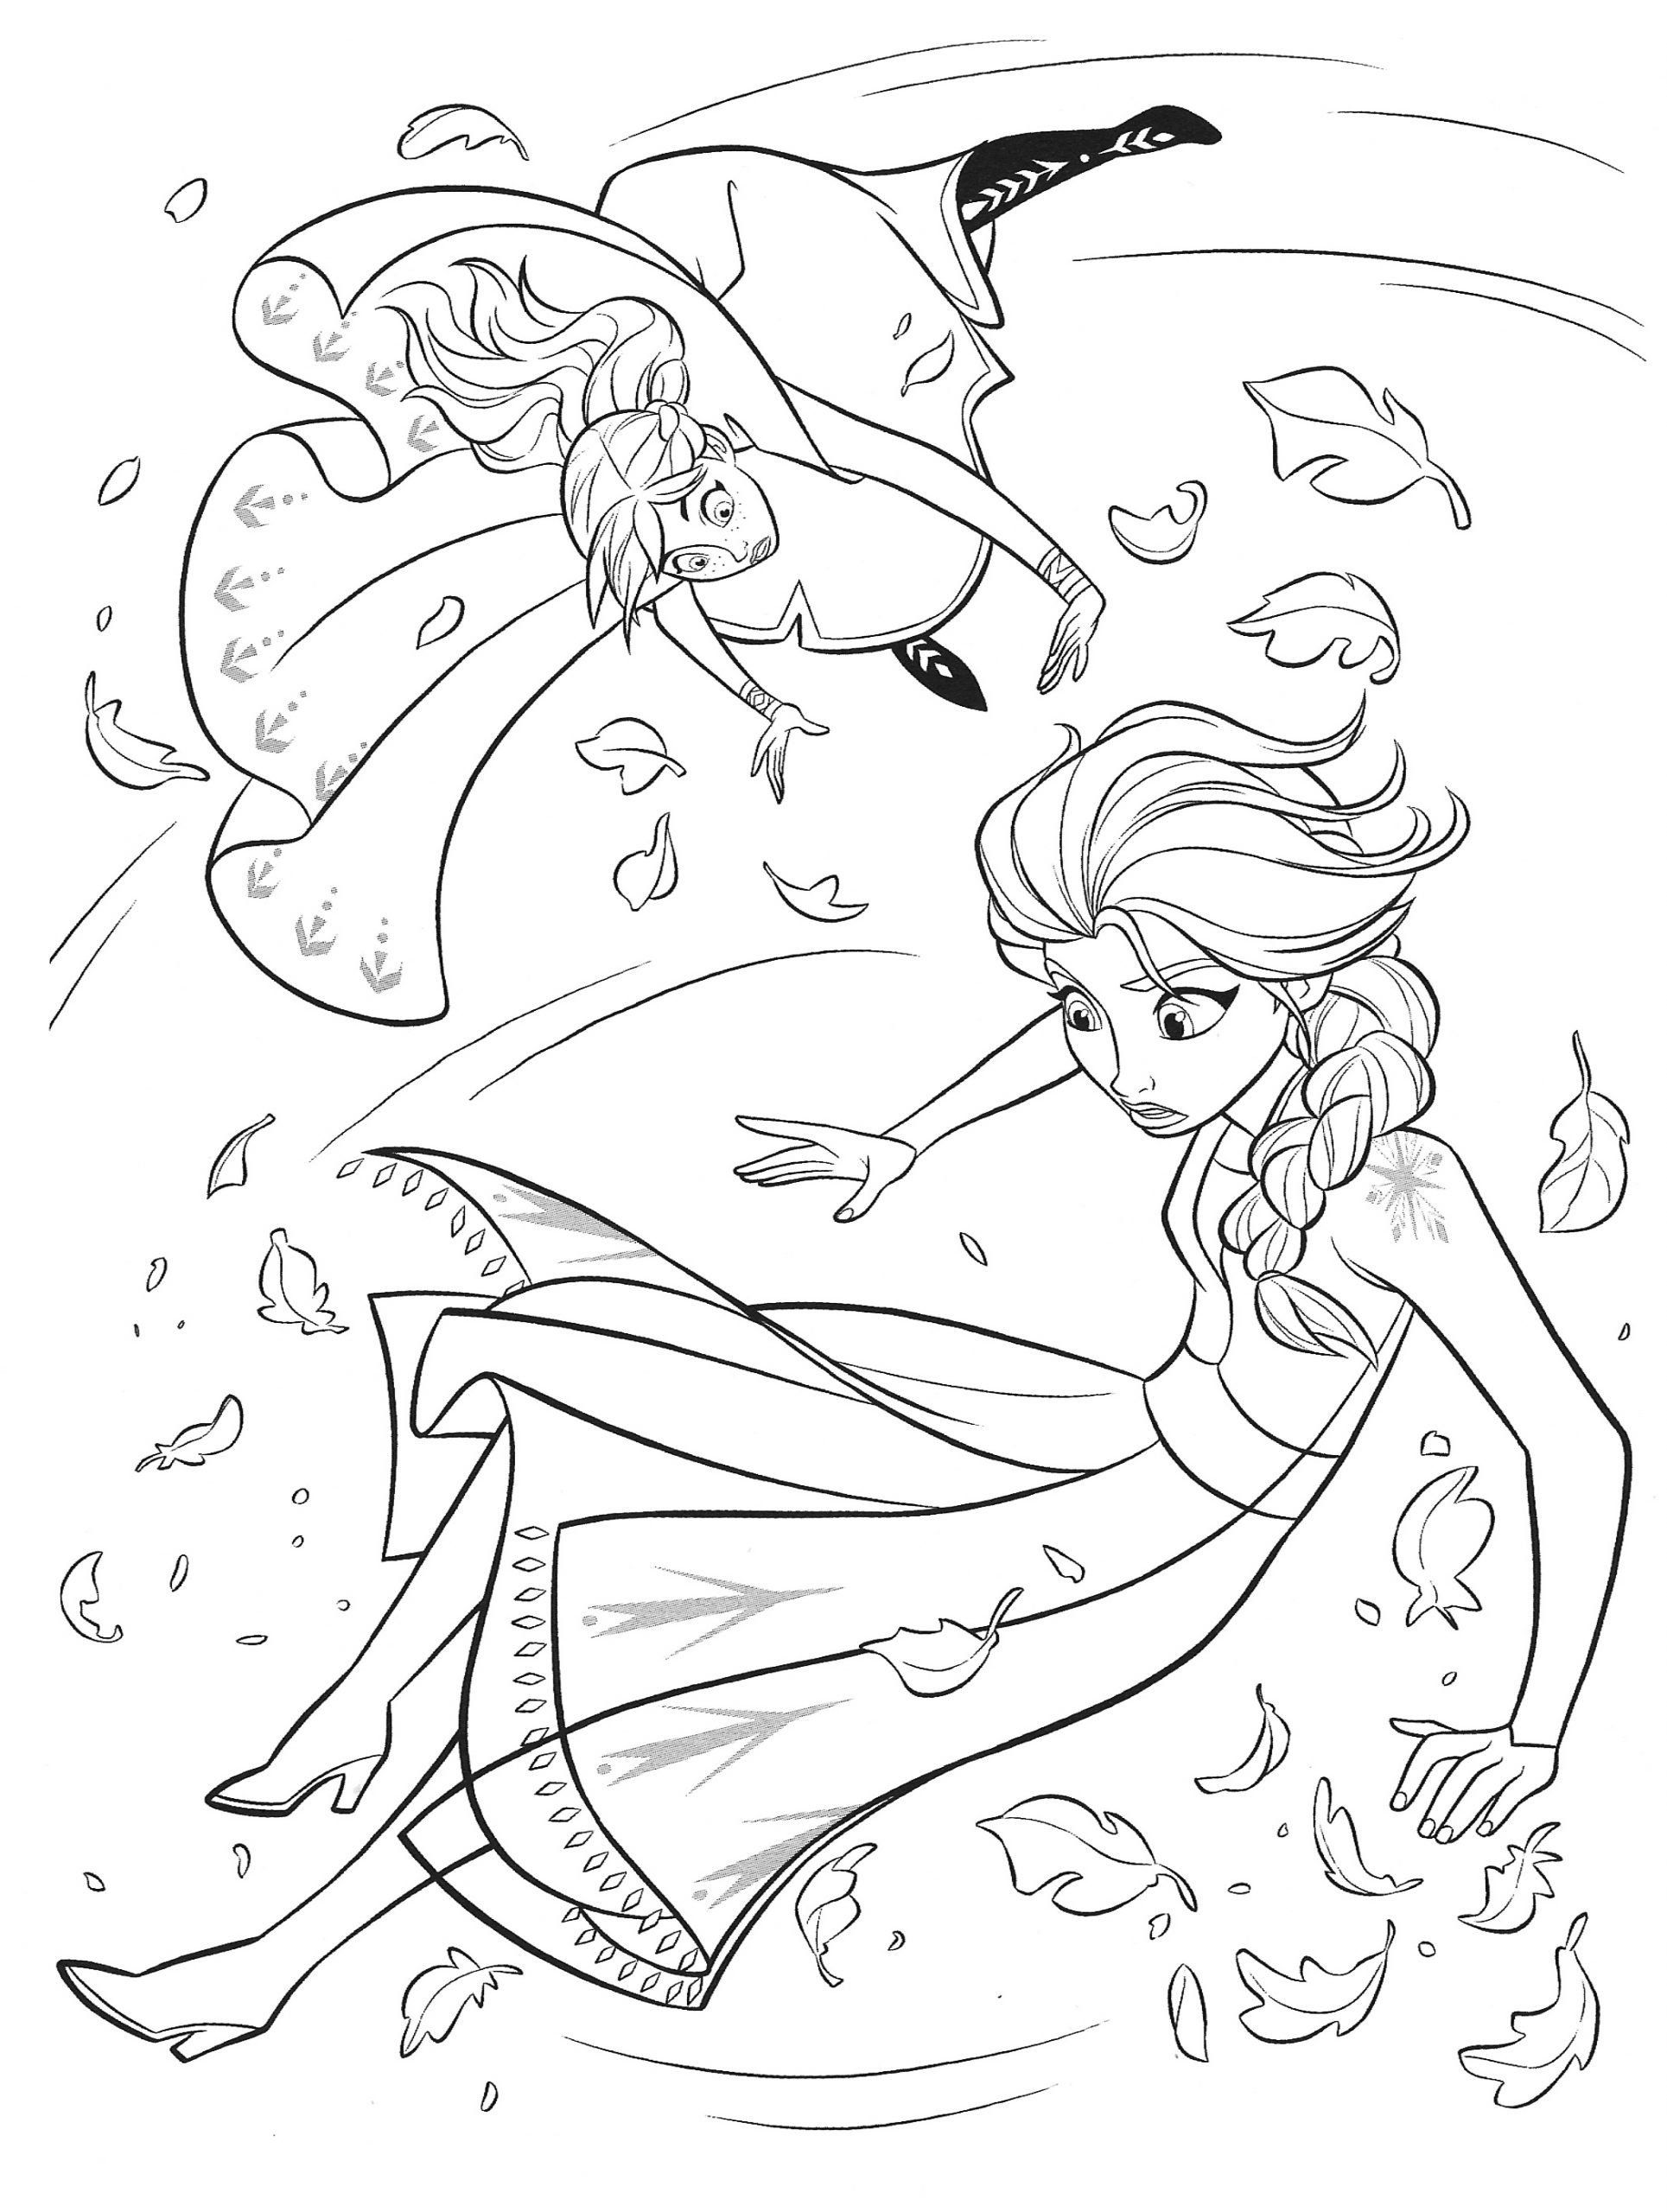 Elsa And Anna Coloring Pages Coloring Book Excelent Frozen Coloringheets Elsa Coloring Pages Disney Coloring Pages Frozen Coloring Pages